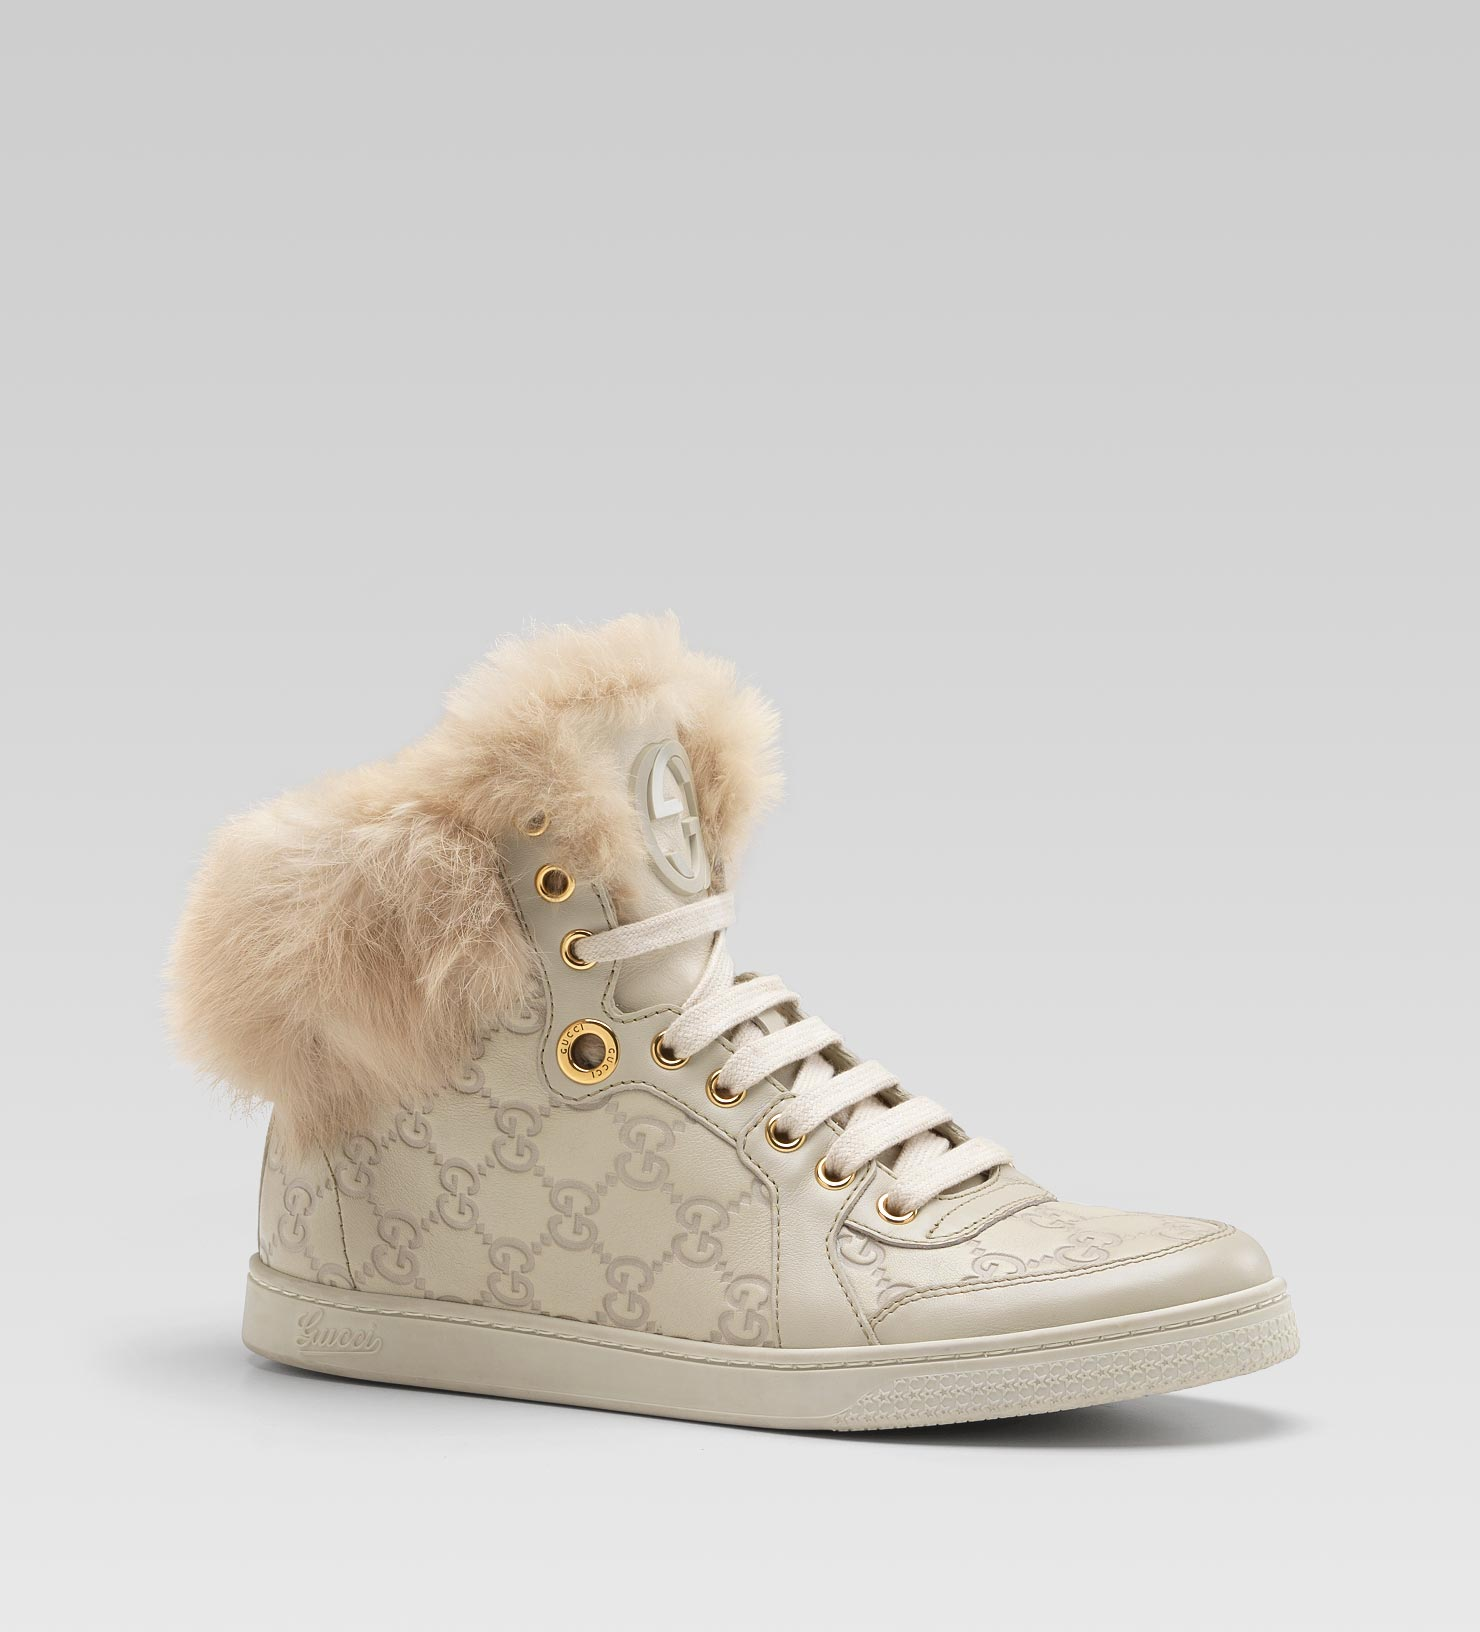 5f164e2a604 Lyst - Gucci Coda Fur-trim Hi-top Interlocking G Sneaker in Gray